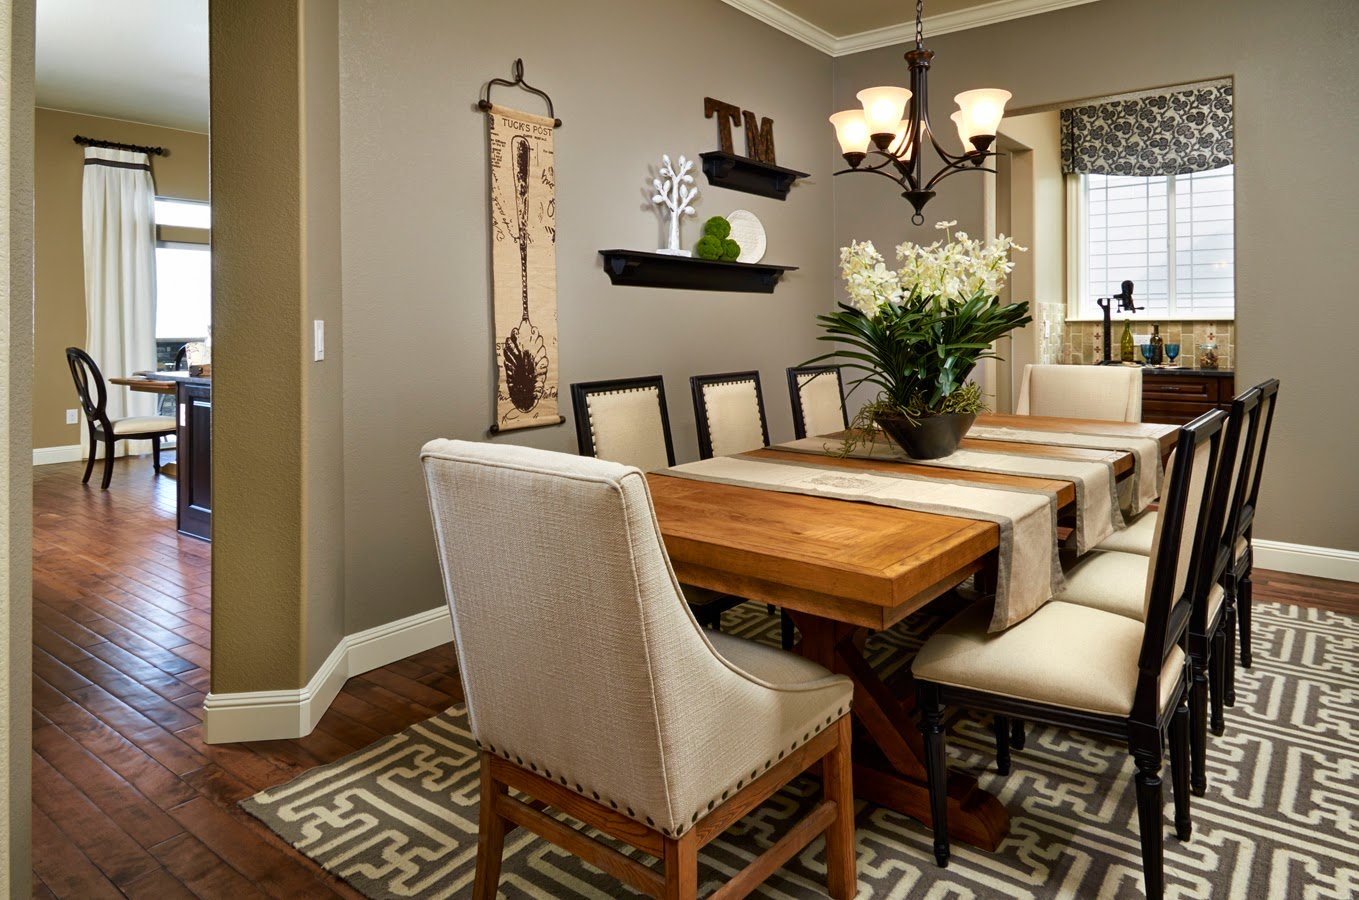 Dining room furniture arrangement ideas and tips kukun Formal dining table centerpiece ideas